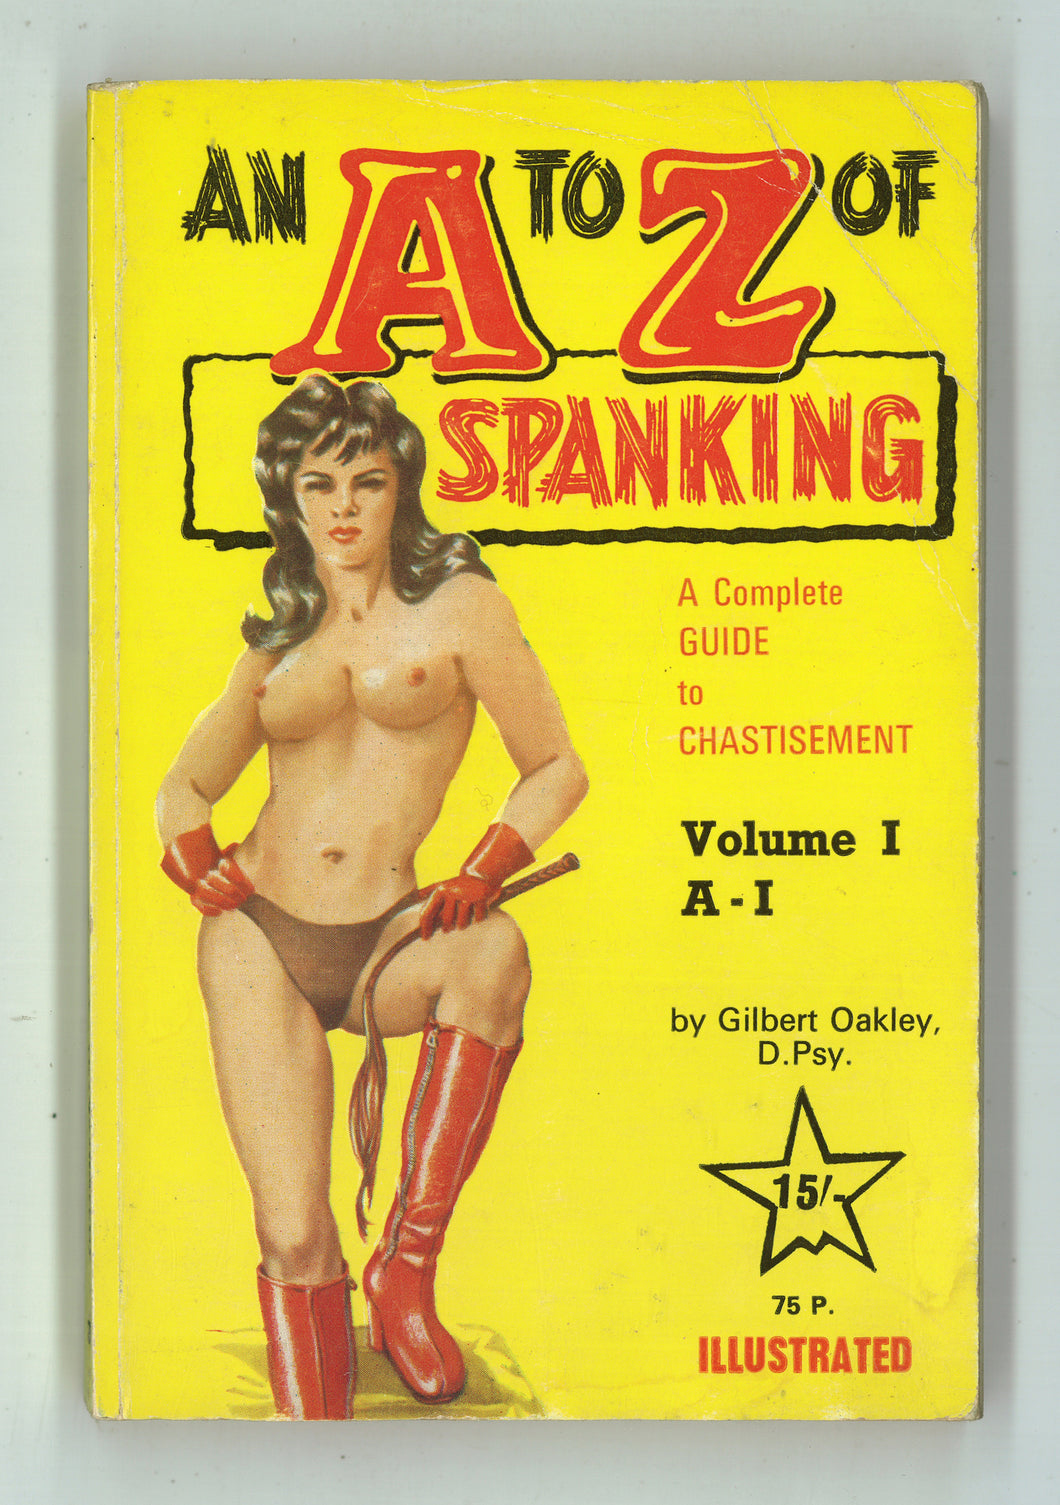 An A to Z of Spanking Vol 1 A-I